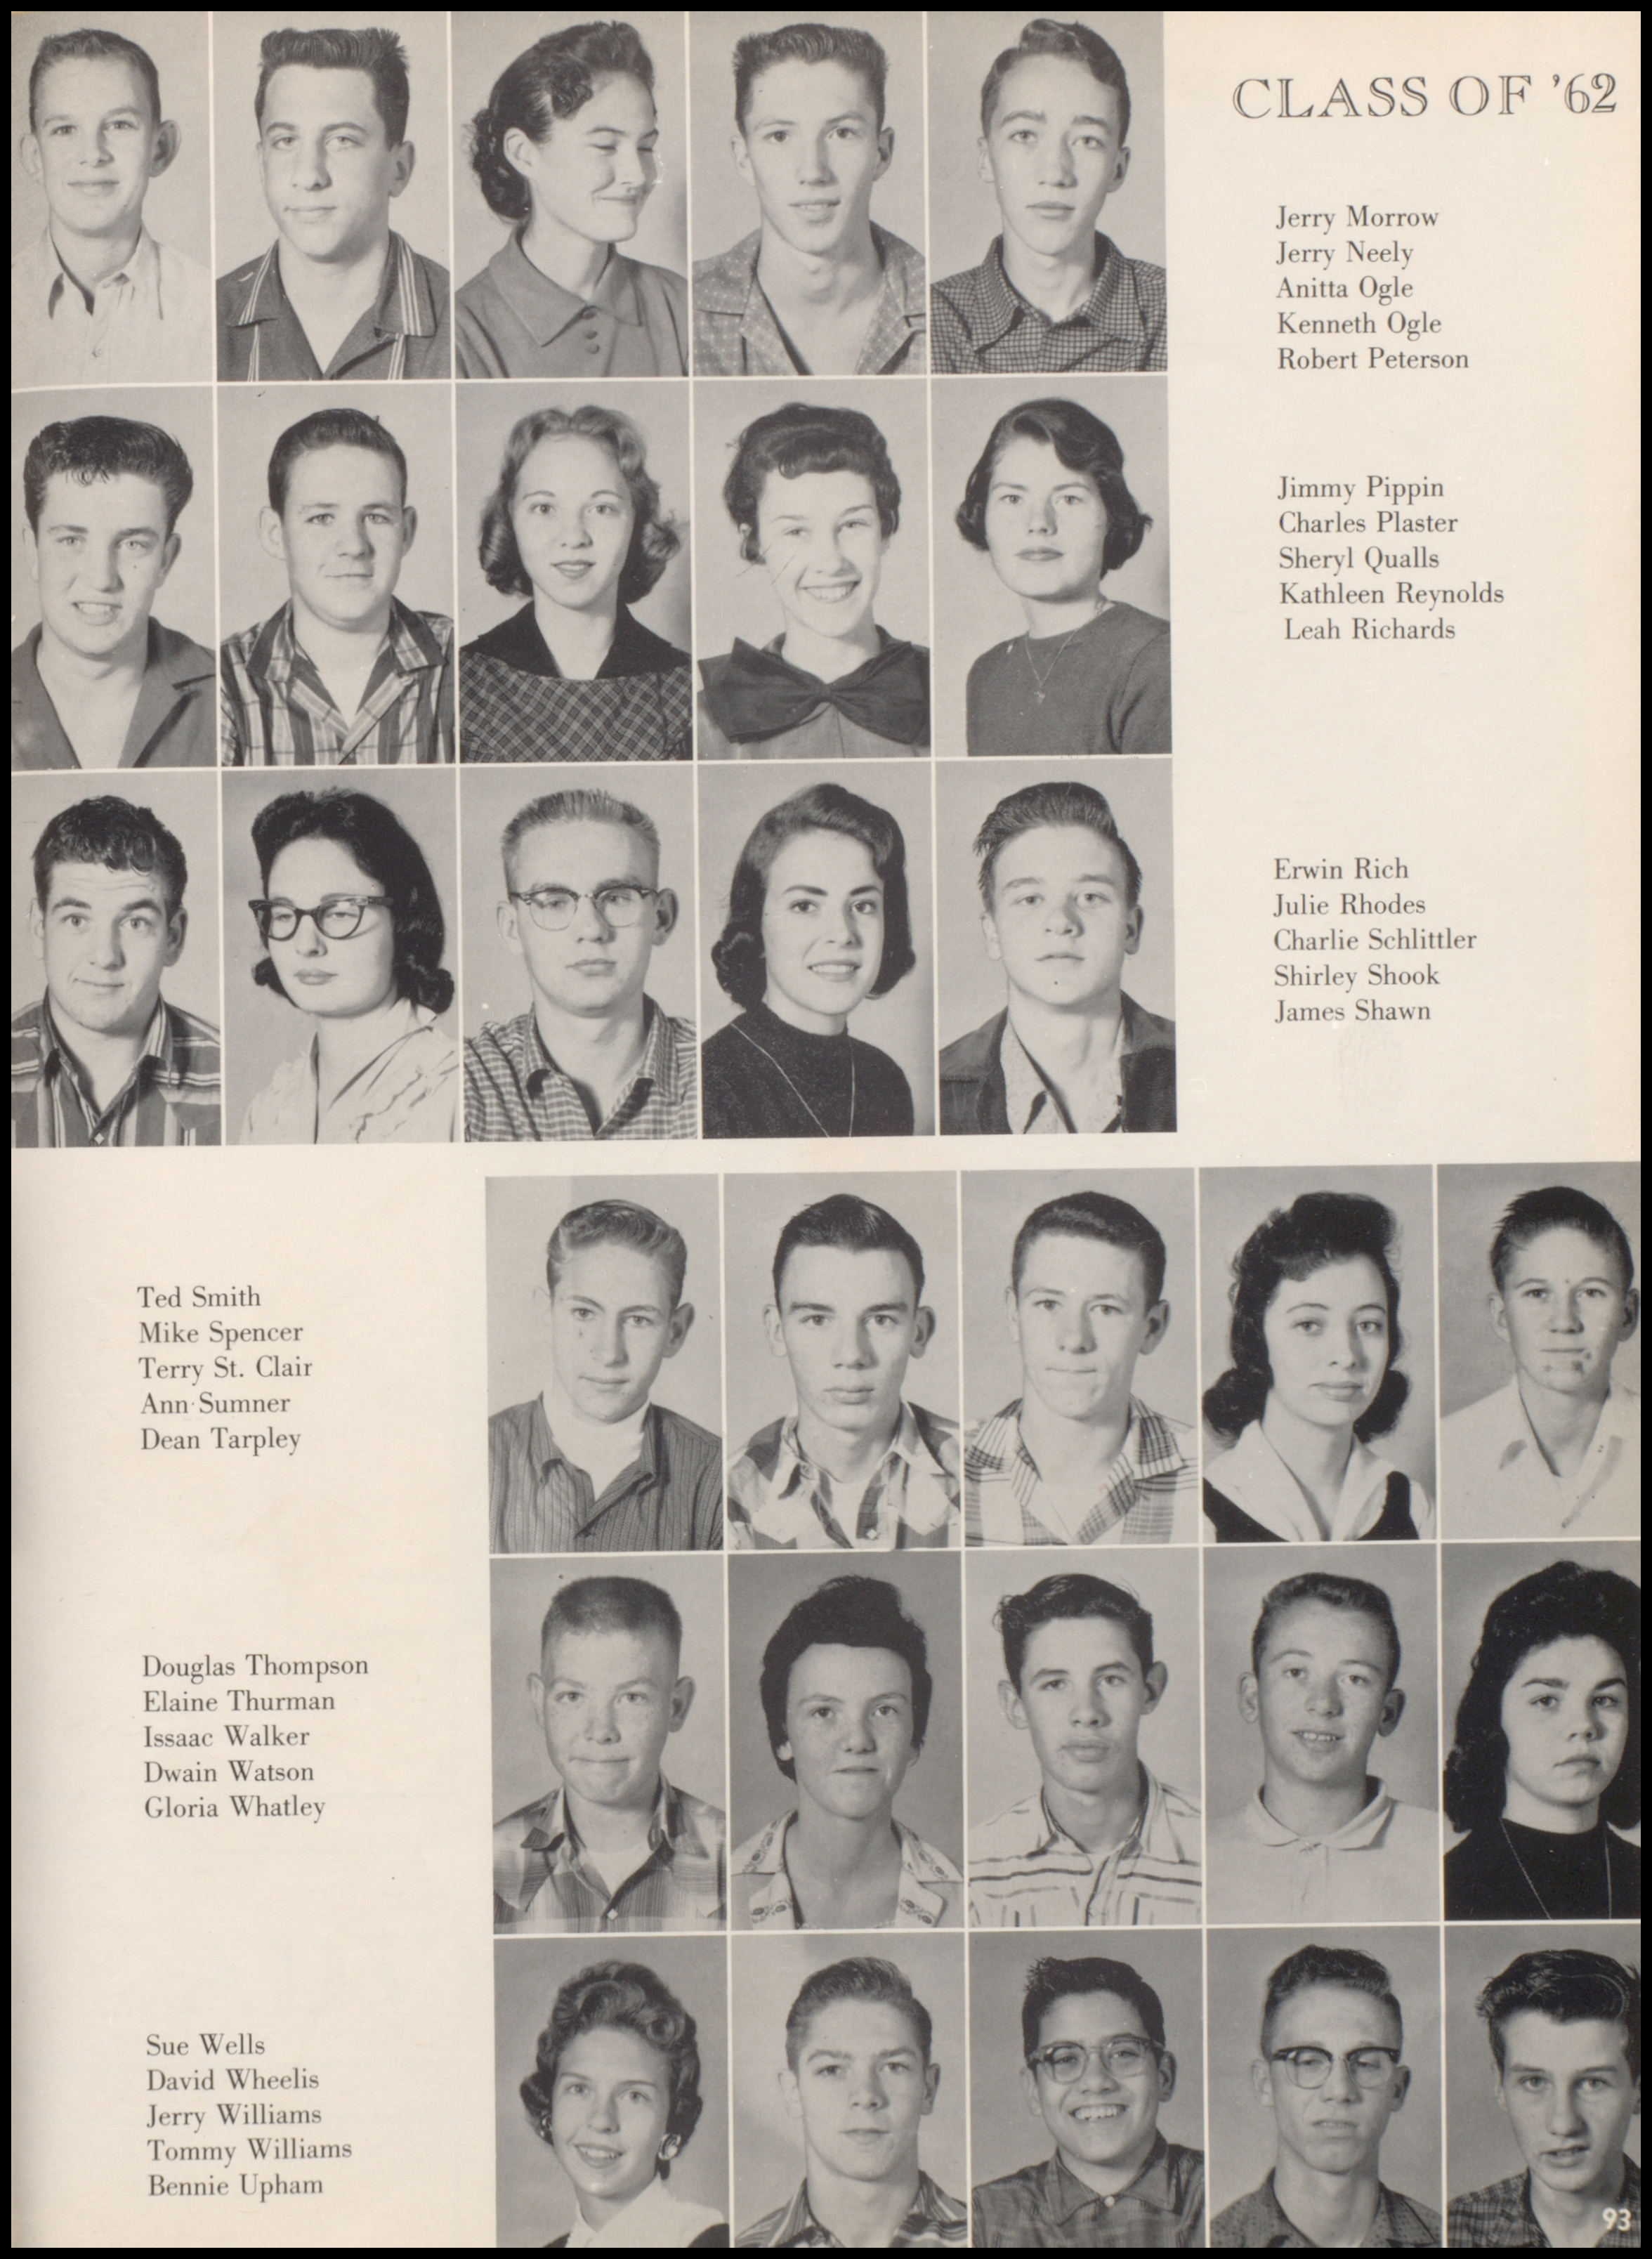 index of s q s for the jacksboro tx high school qualls roland freshman picture 1962 0091